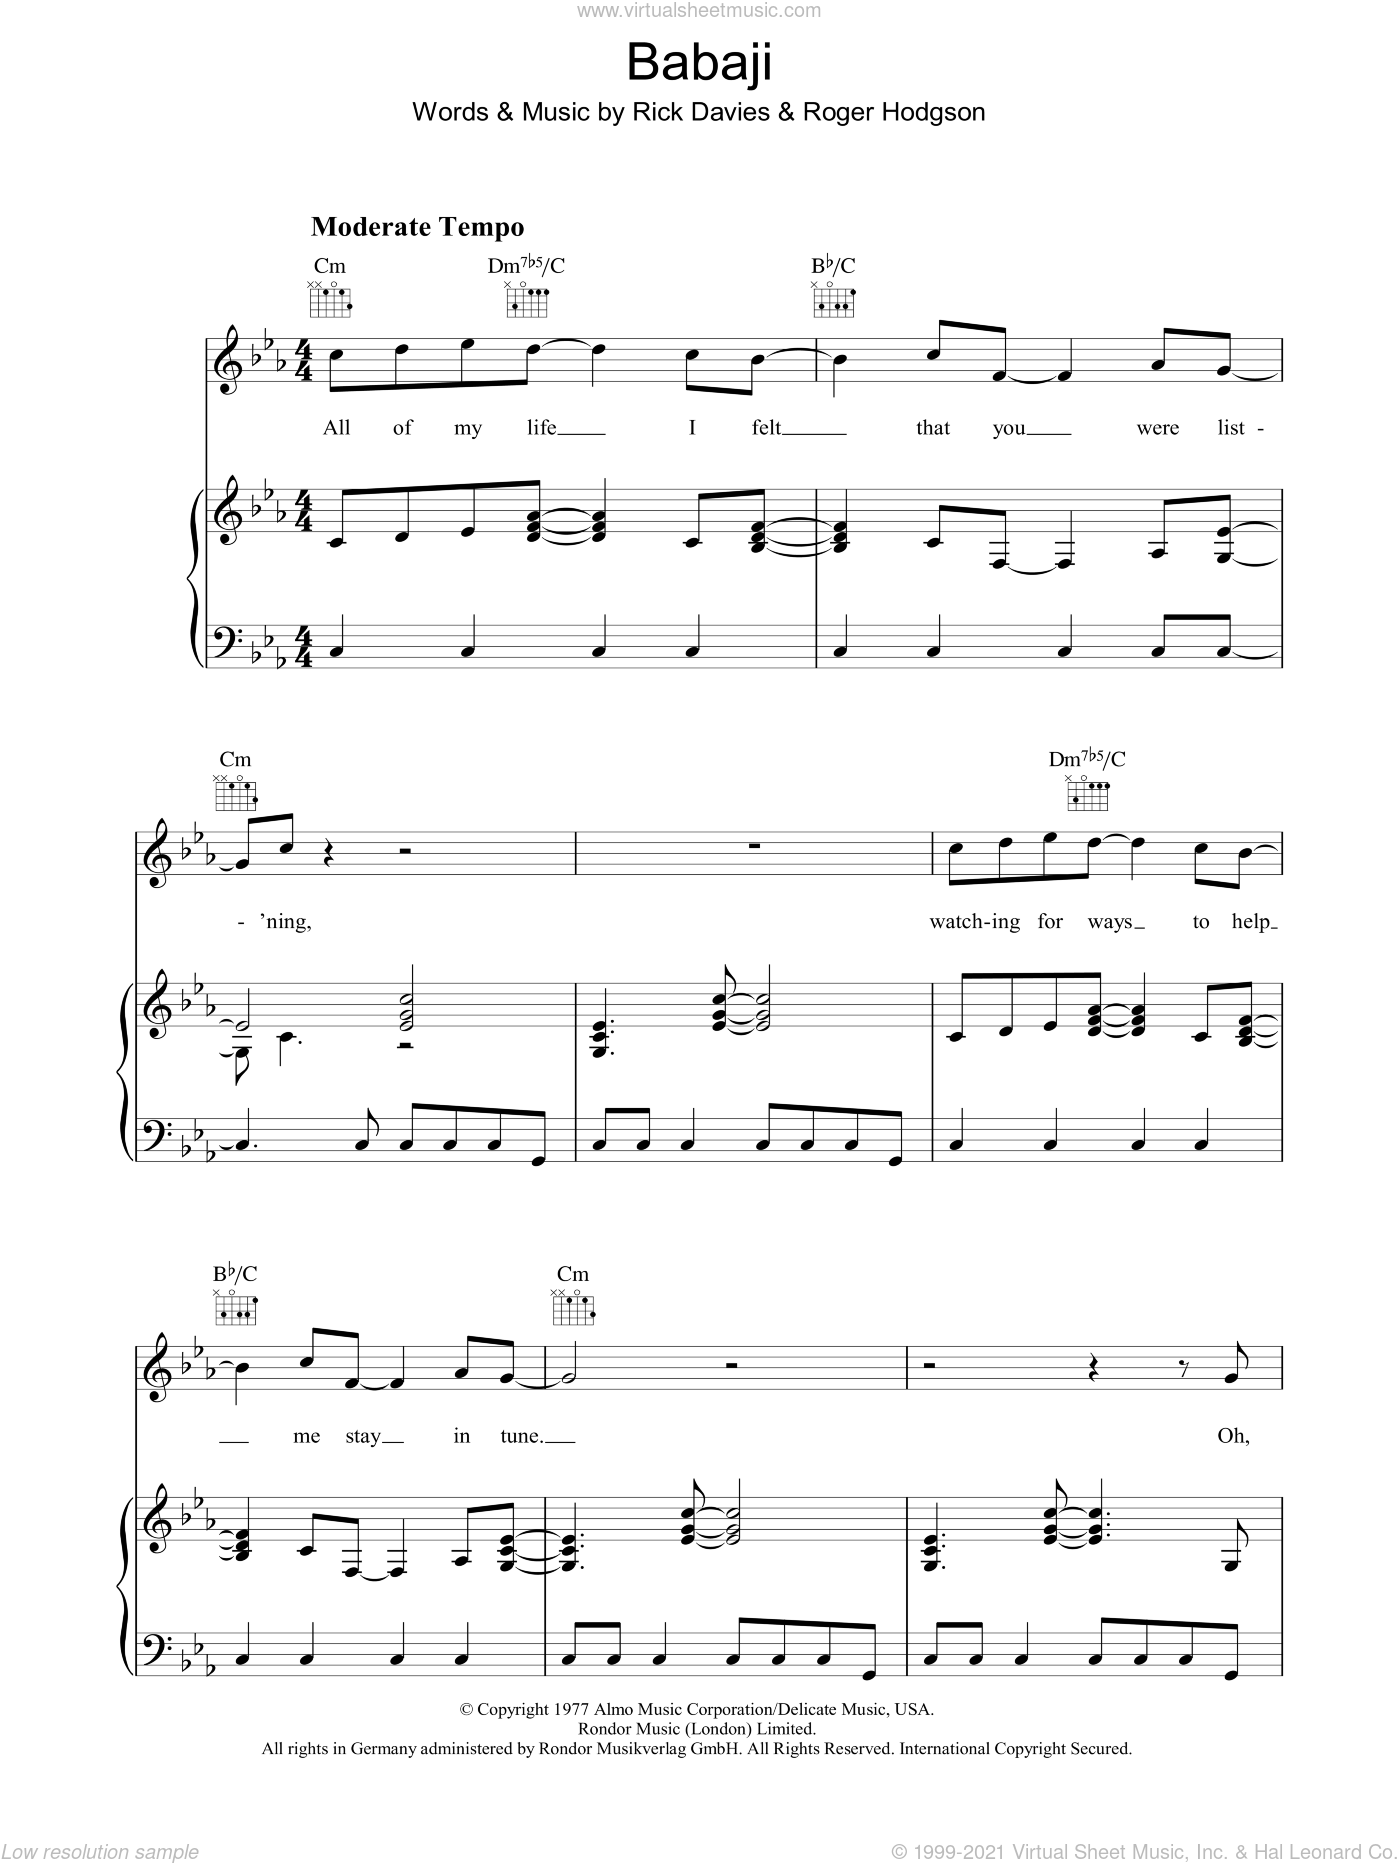 Babaji sheet music for voice, piano or guitar by Supertramp, Rick Davies and Roger Hodgson, intermediate skill level